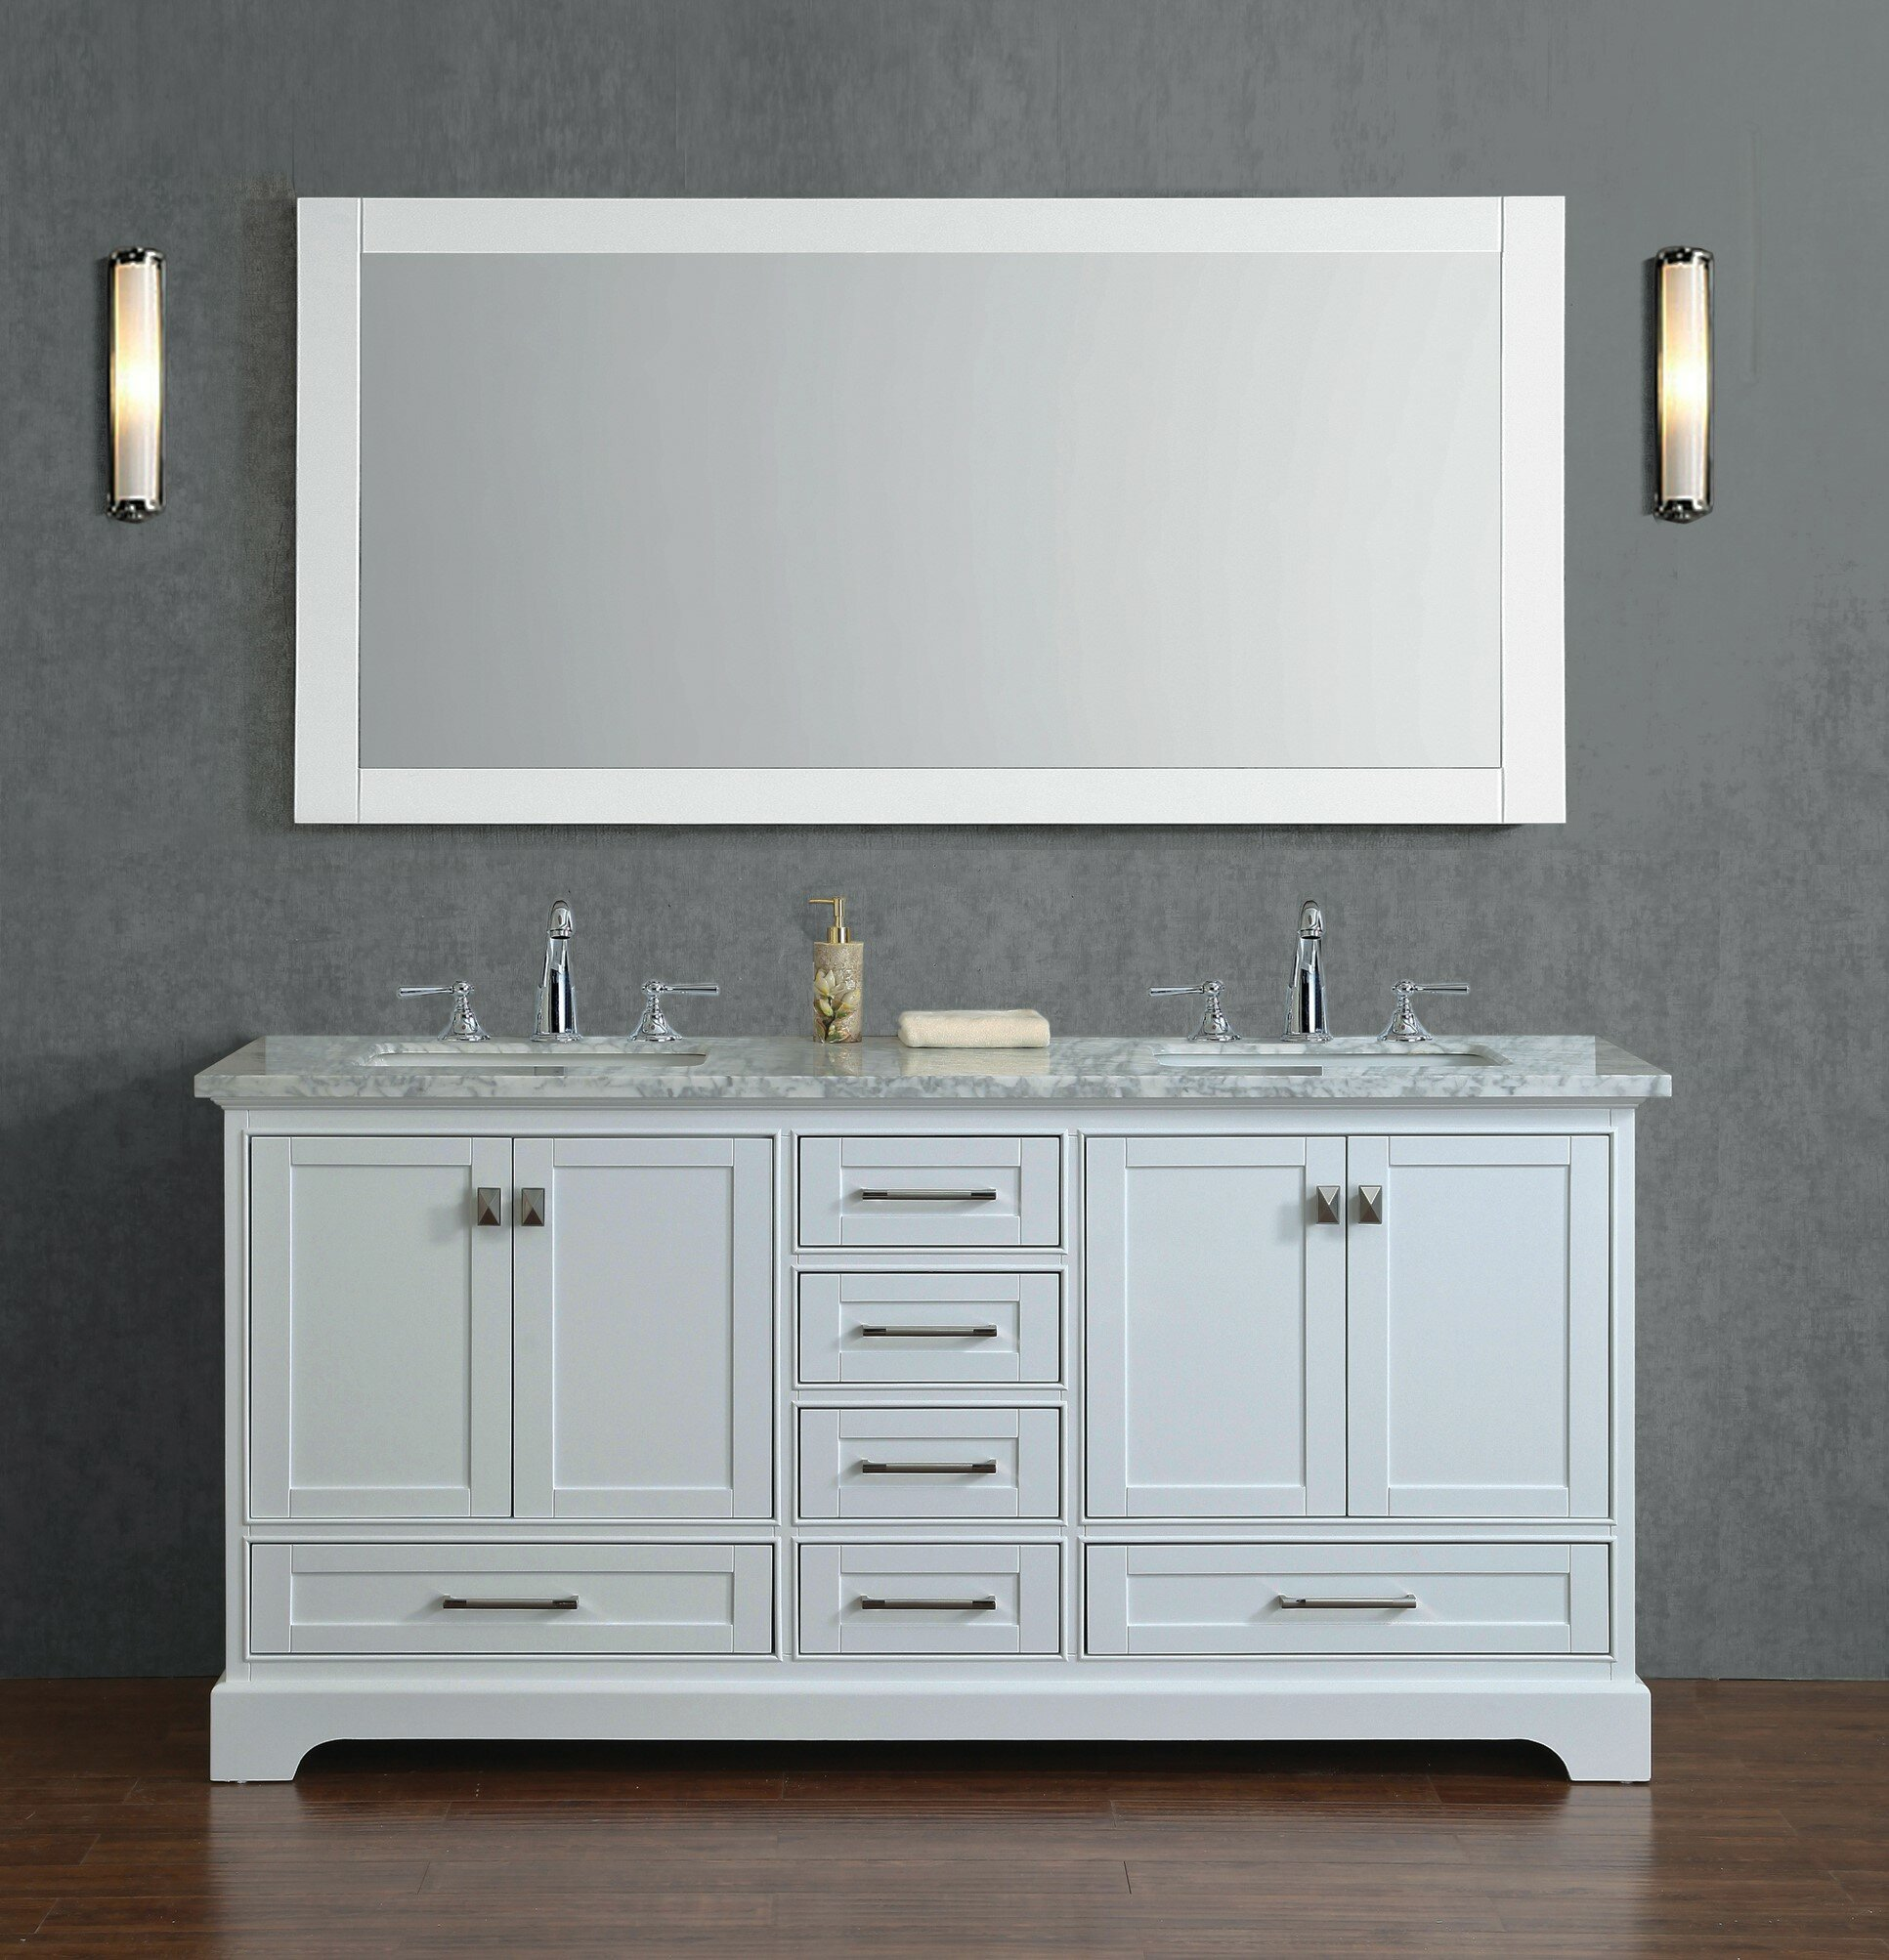 with products white marble sink concord ceramic img italian wood cabinet inch drawers carrara bath drawer single solid doors sb natural vanity bathroom top